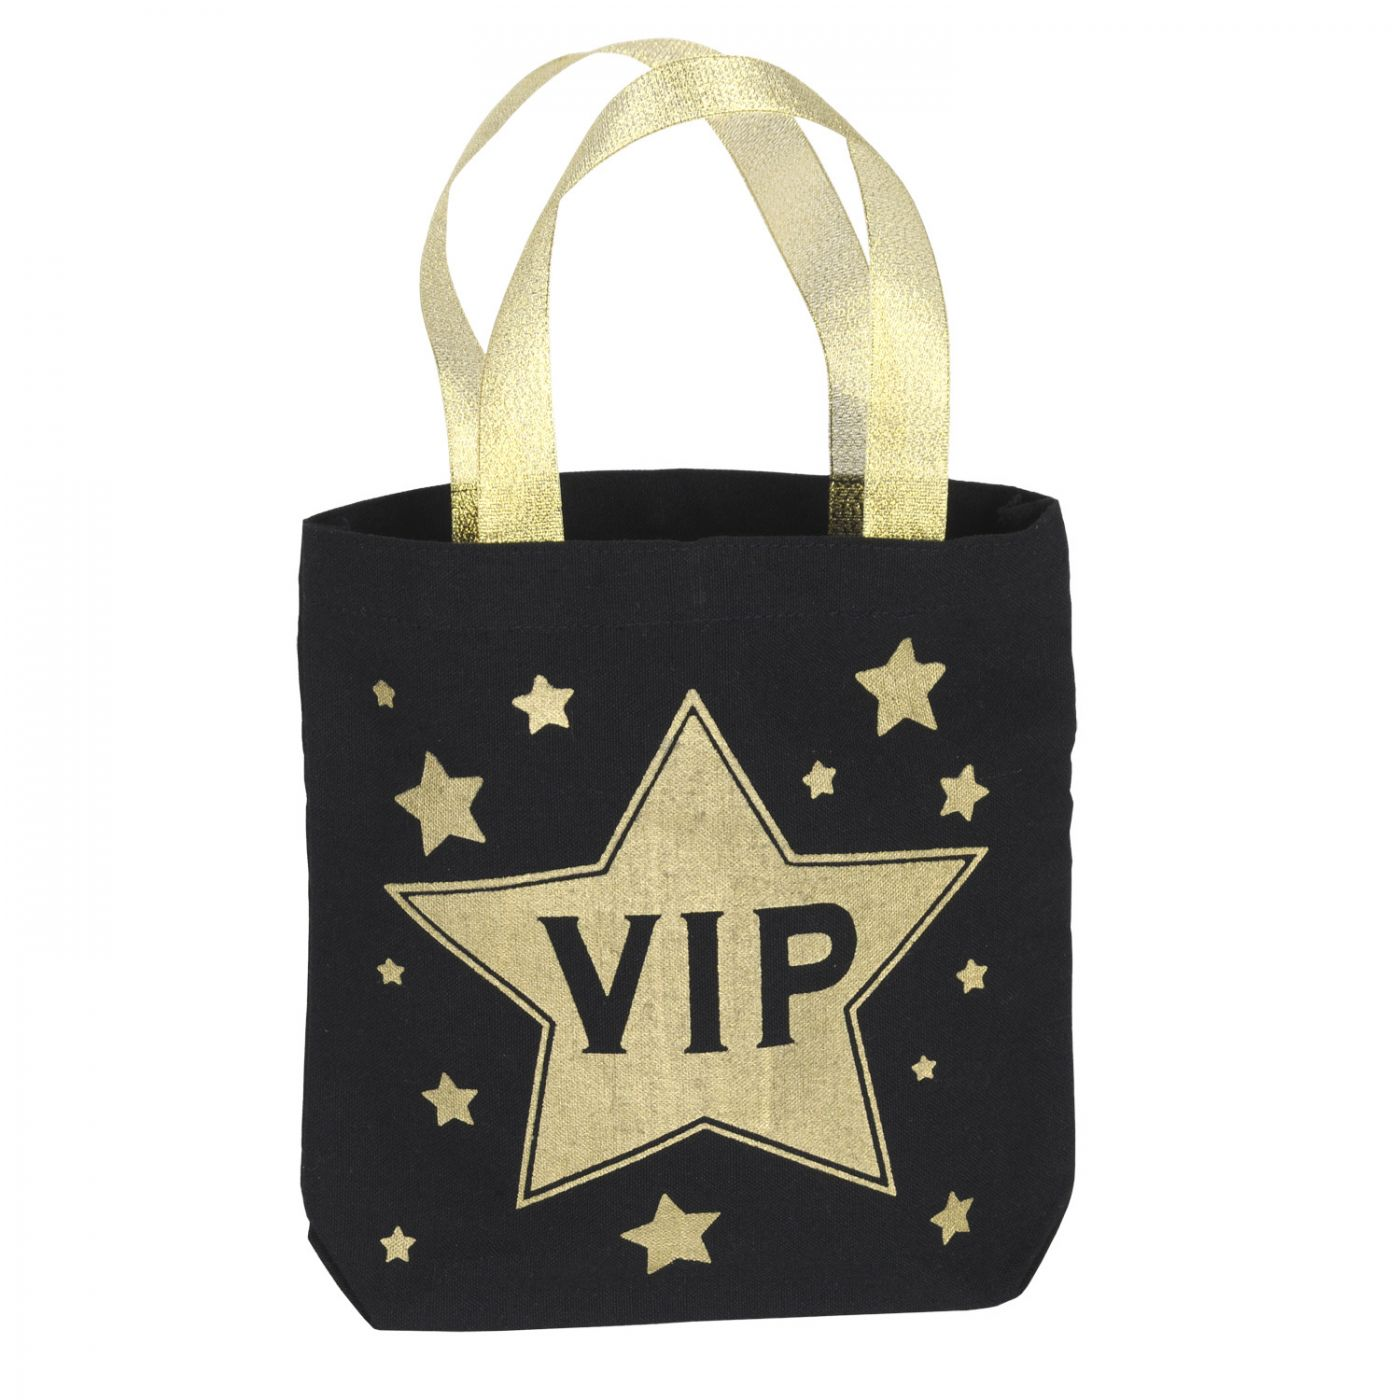 VIP Goody Bag image